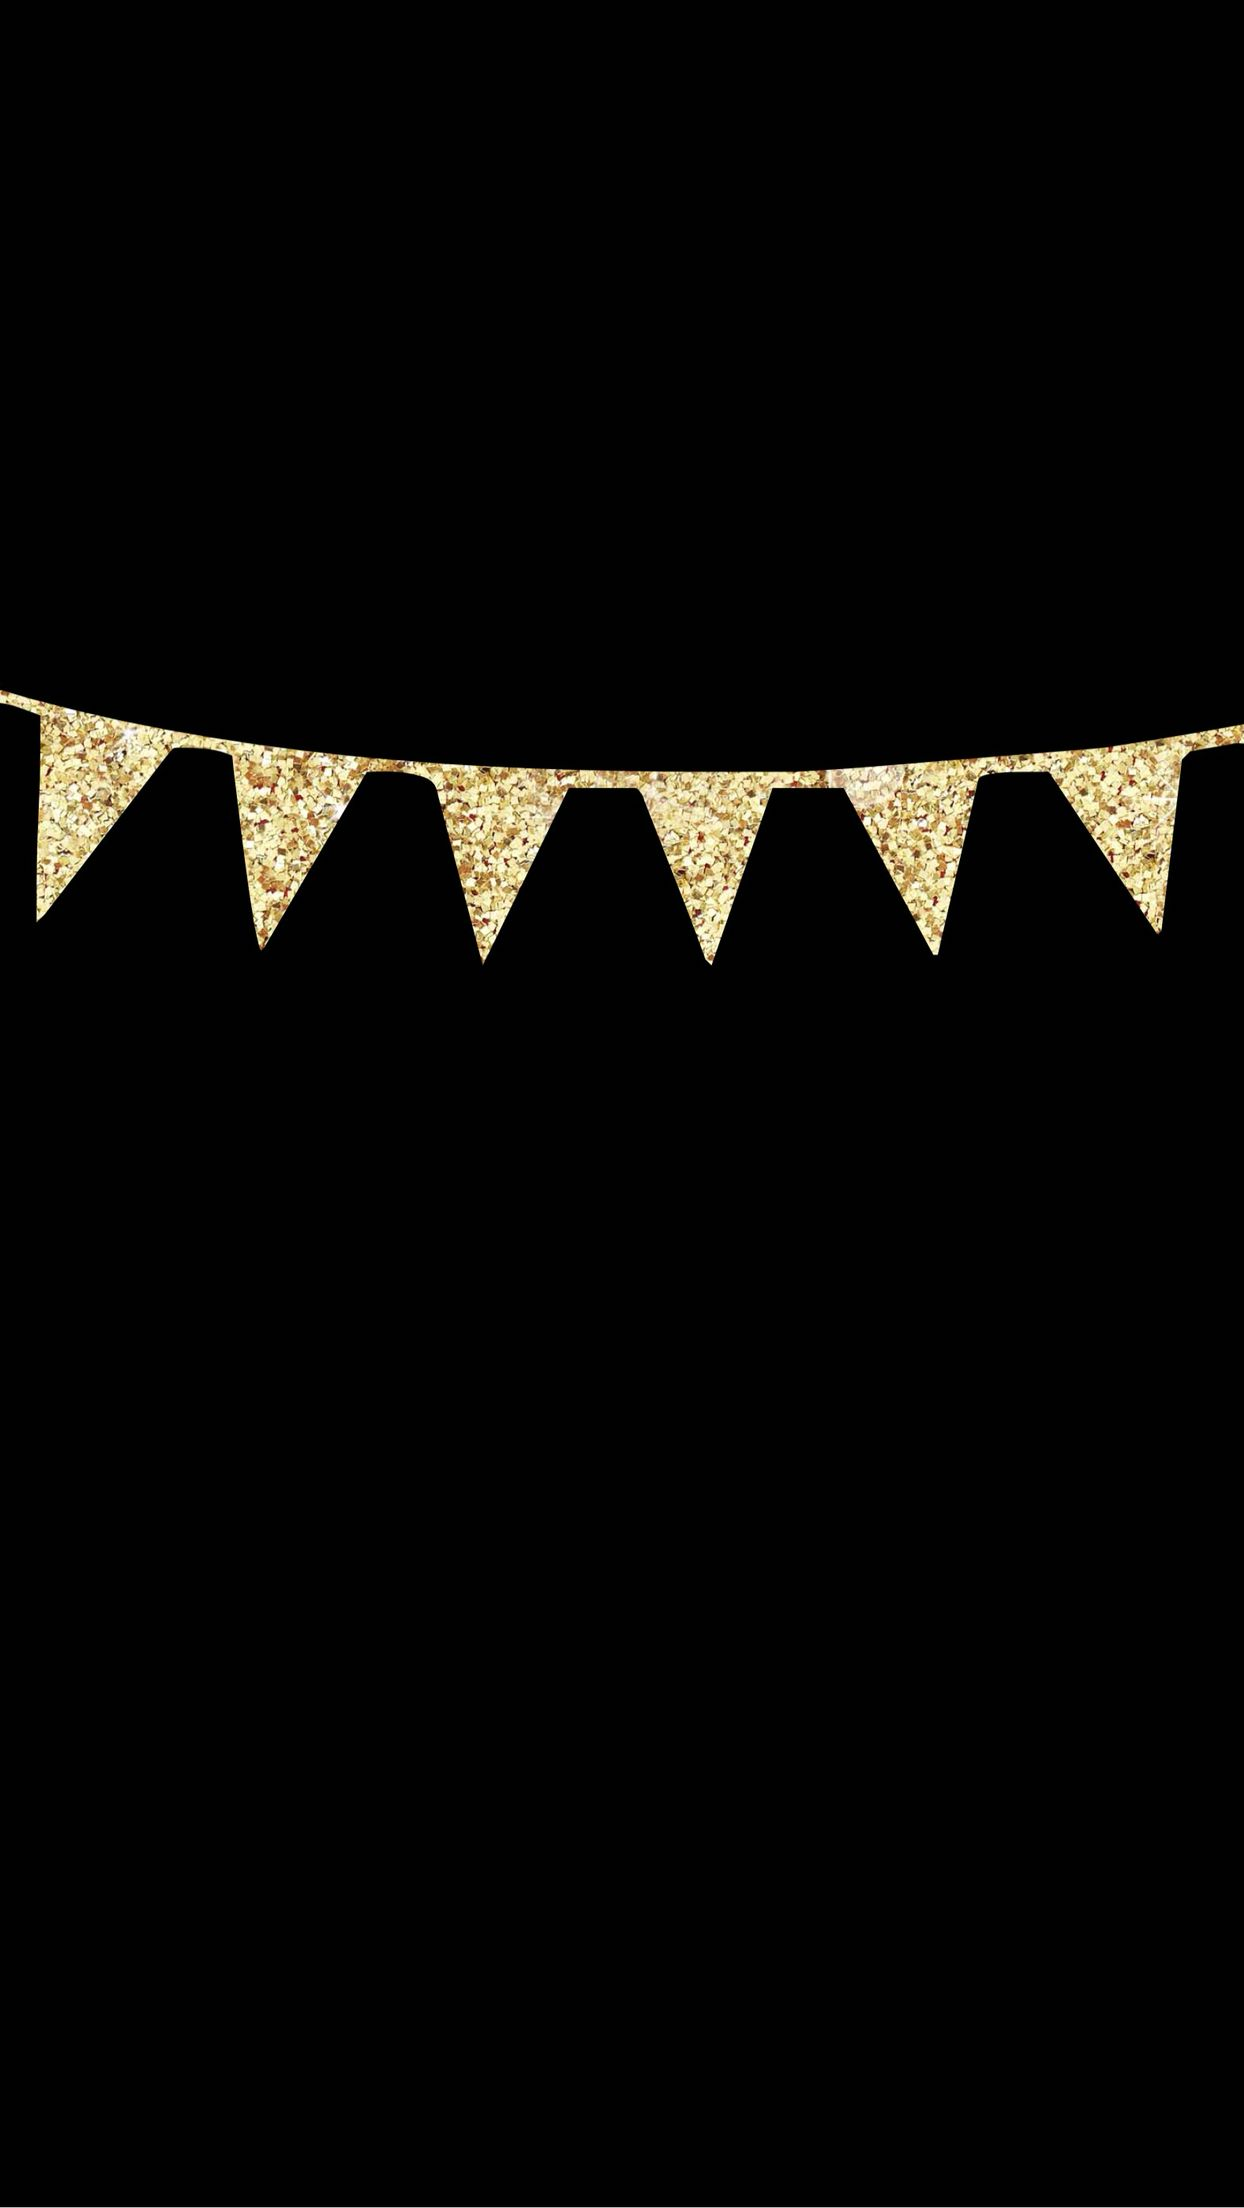 Wallpaper iphone gold - Iphone 6 Plus Lock Screen Wallpaper Black With Gold Glitter